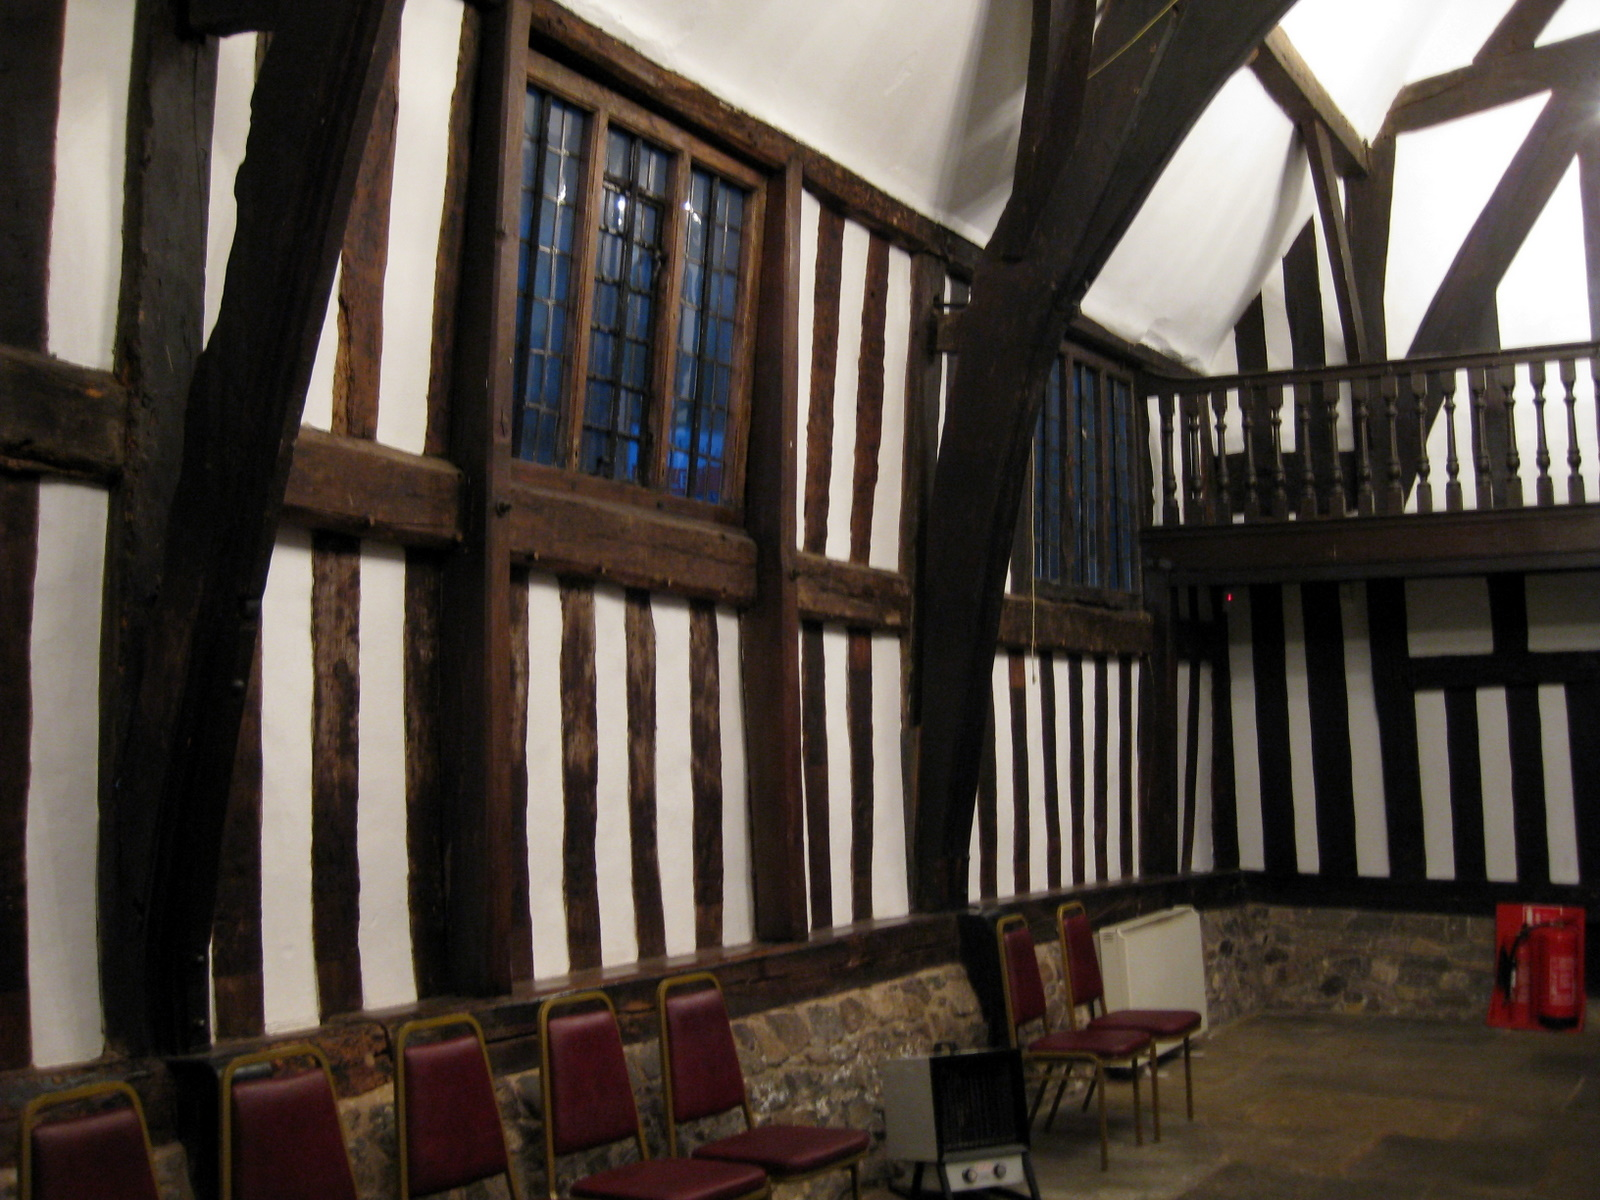 Leicester_Guildhall_Great_Hall_3 (Wikipedia.org NotFromUtrecht)